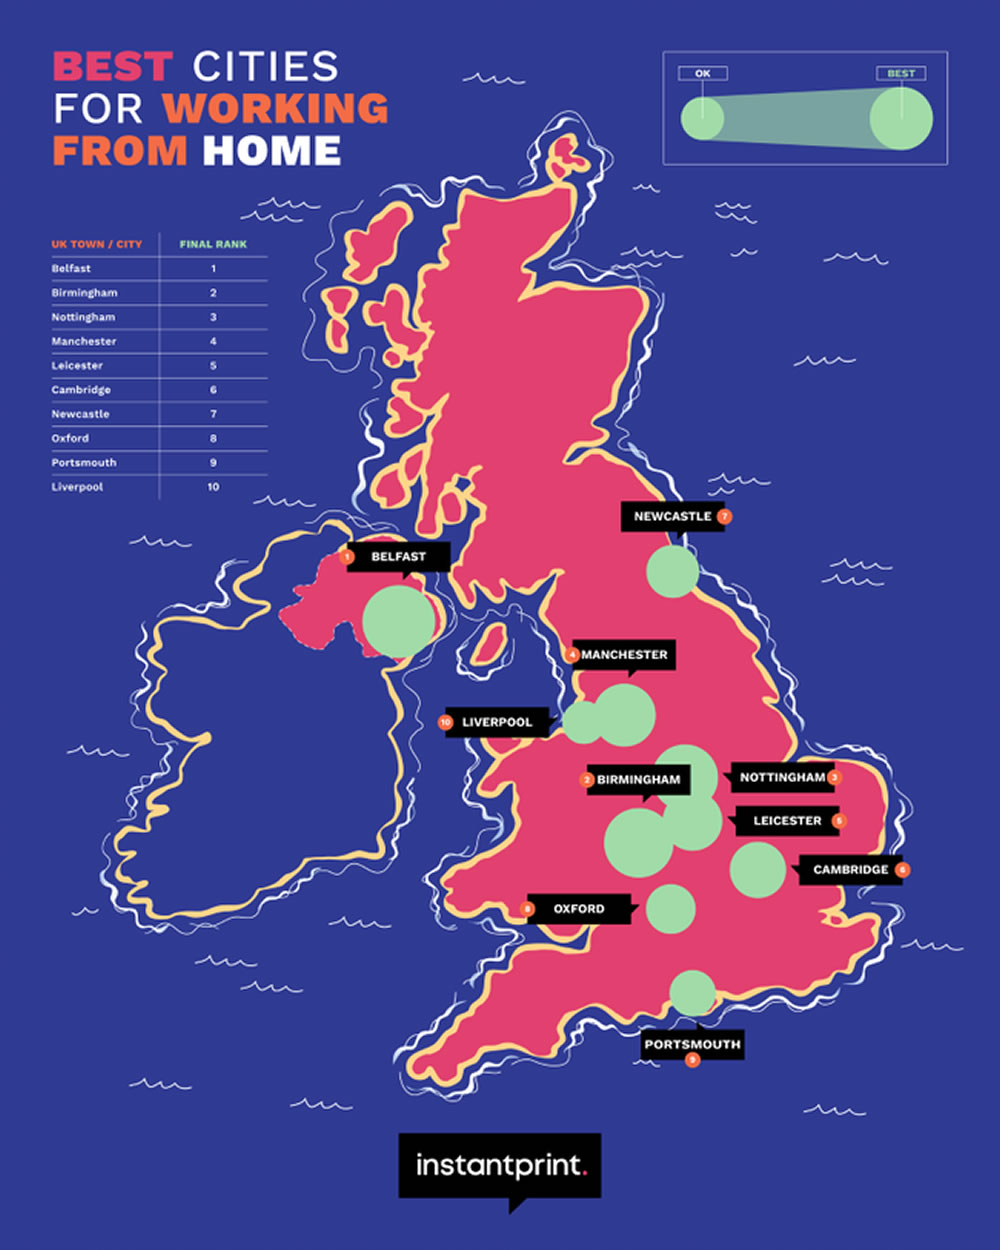 Best UK cities to work from home